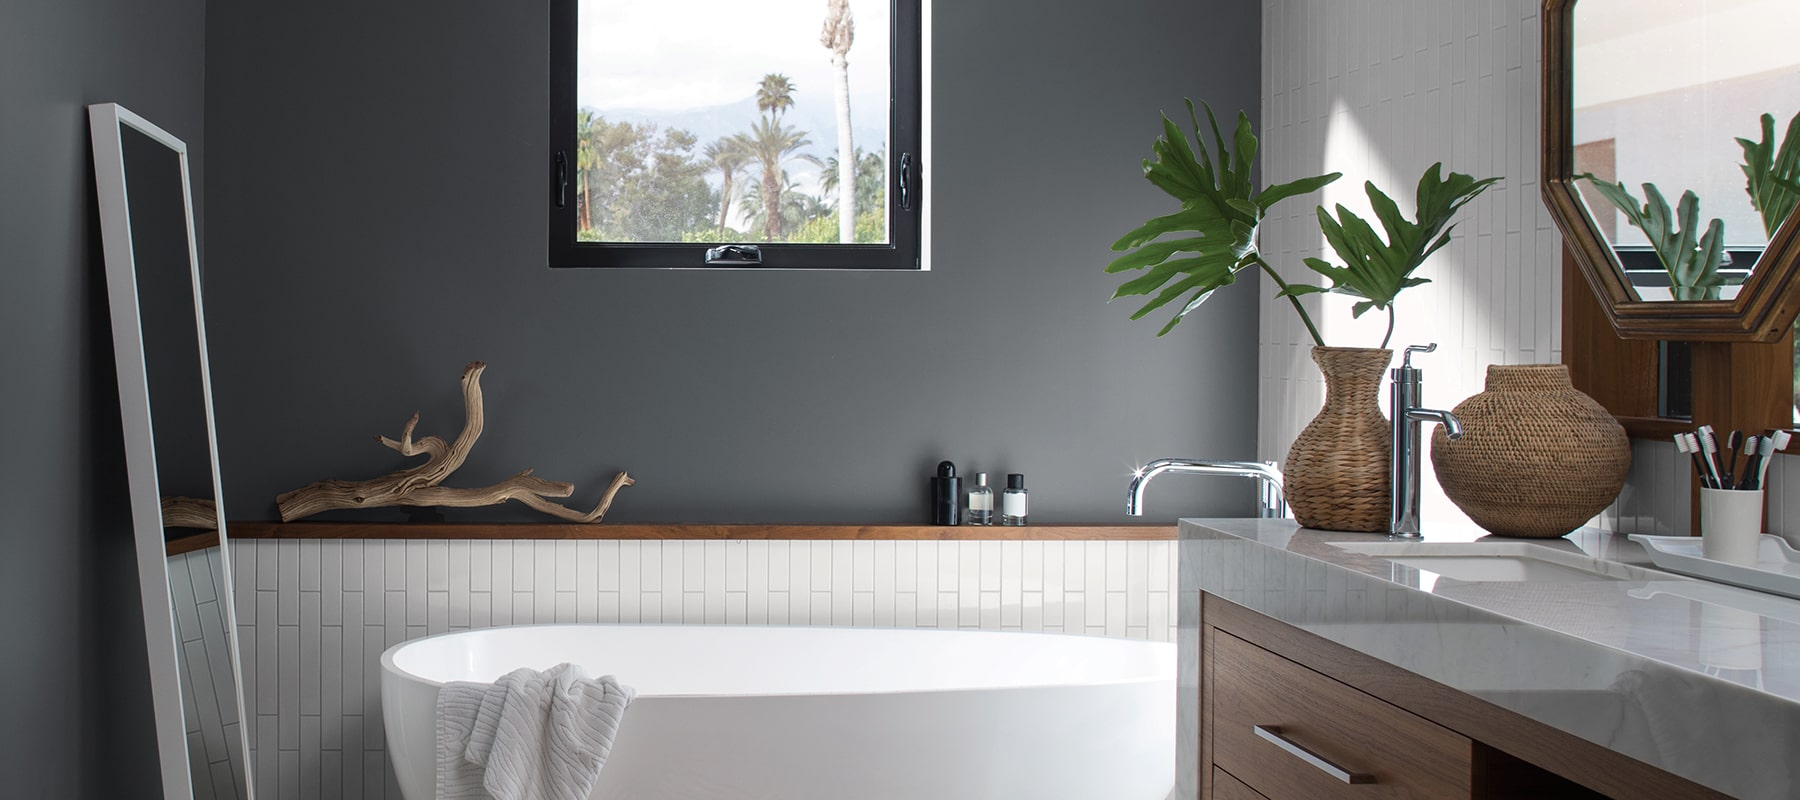 modern bathroom painted dark gray with white fixtures